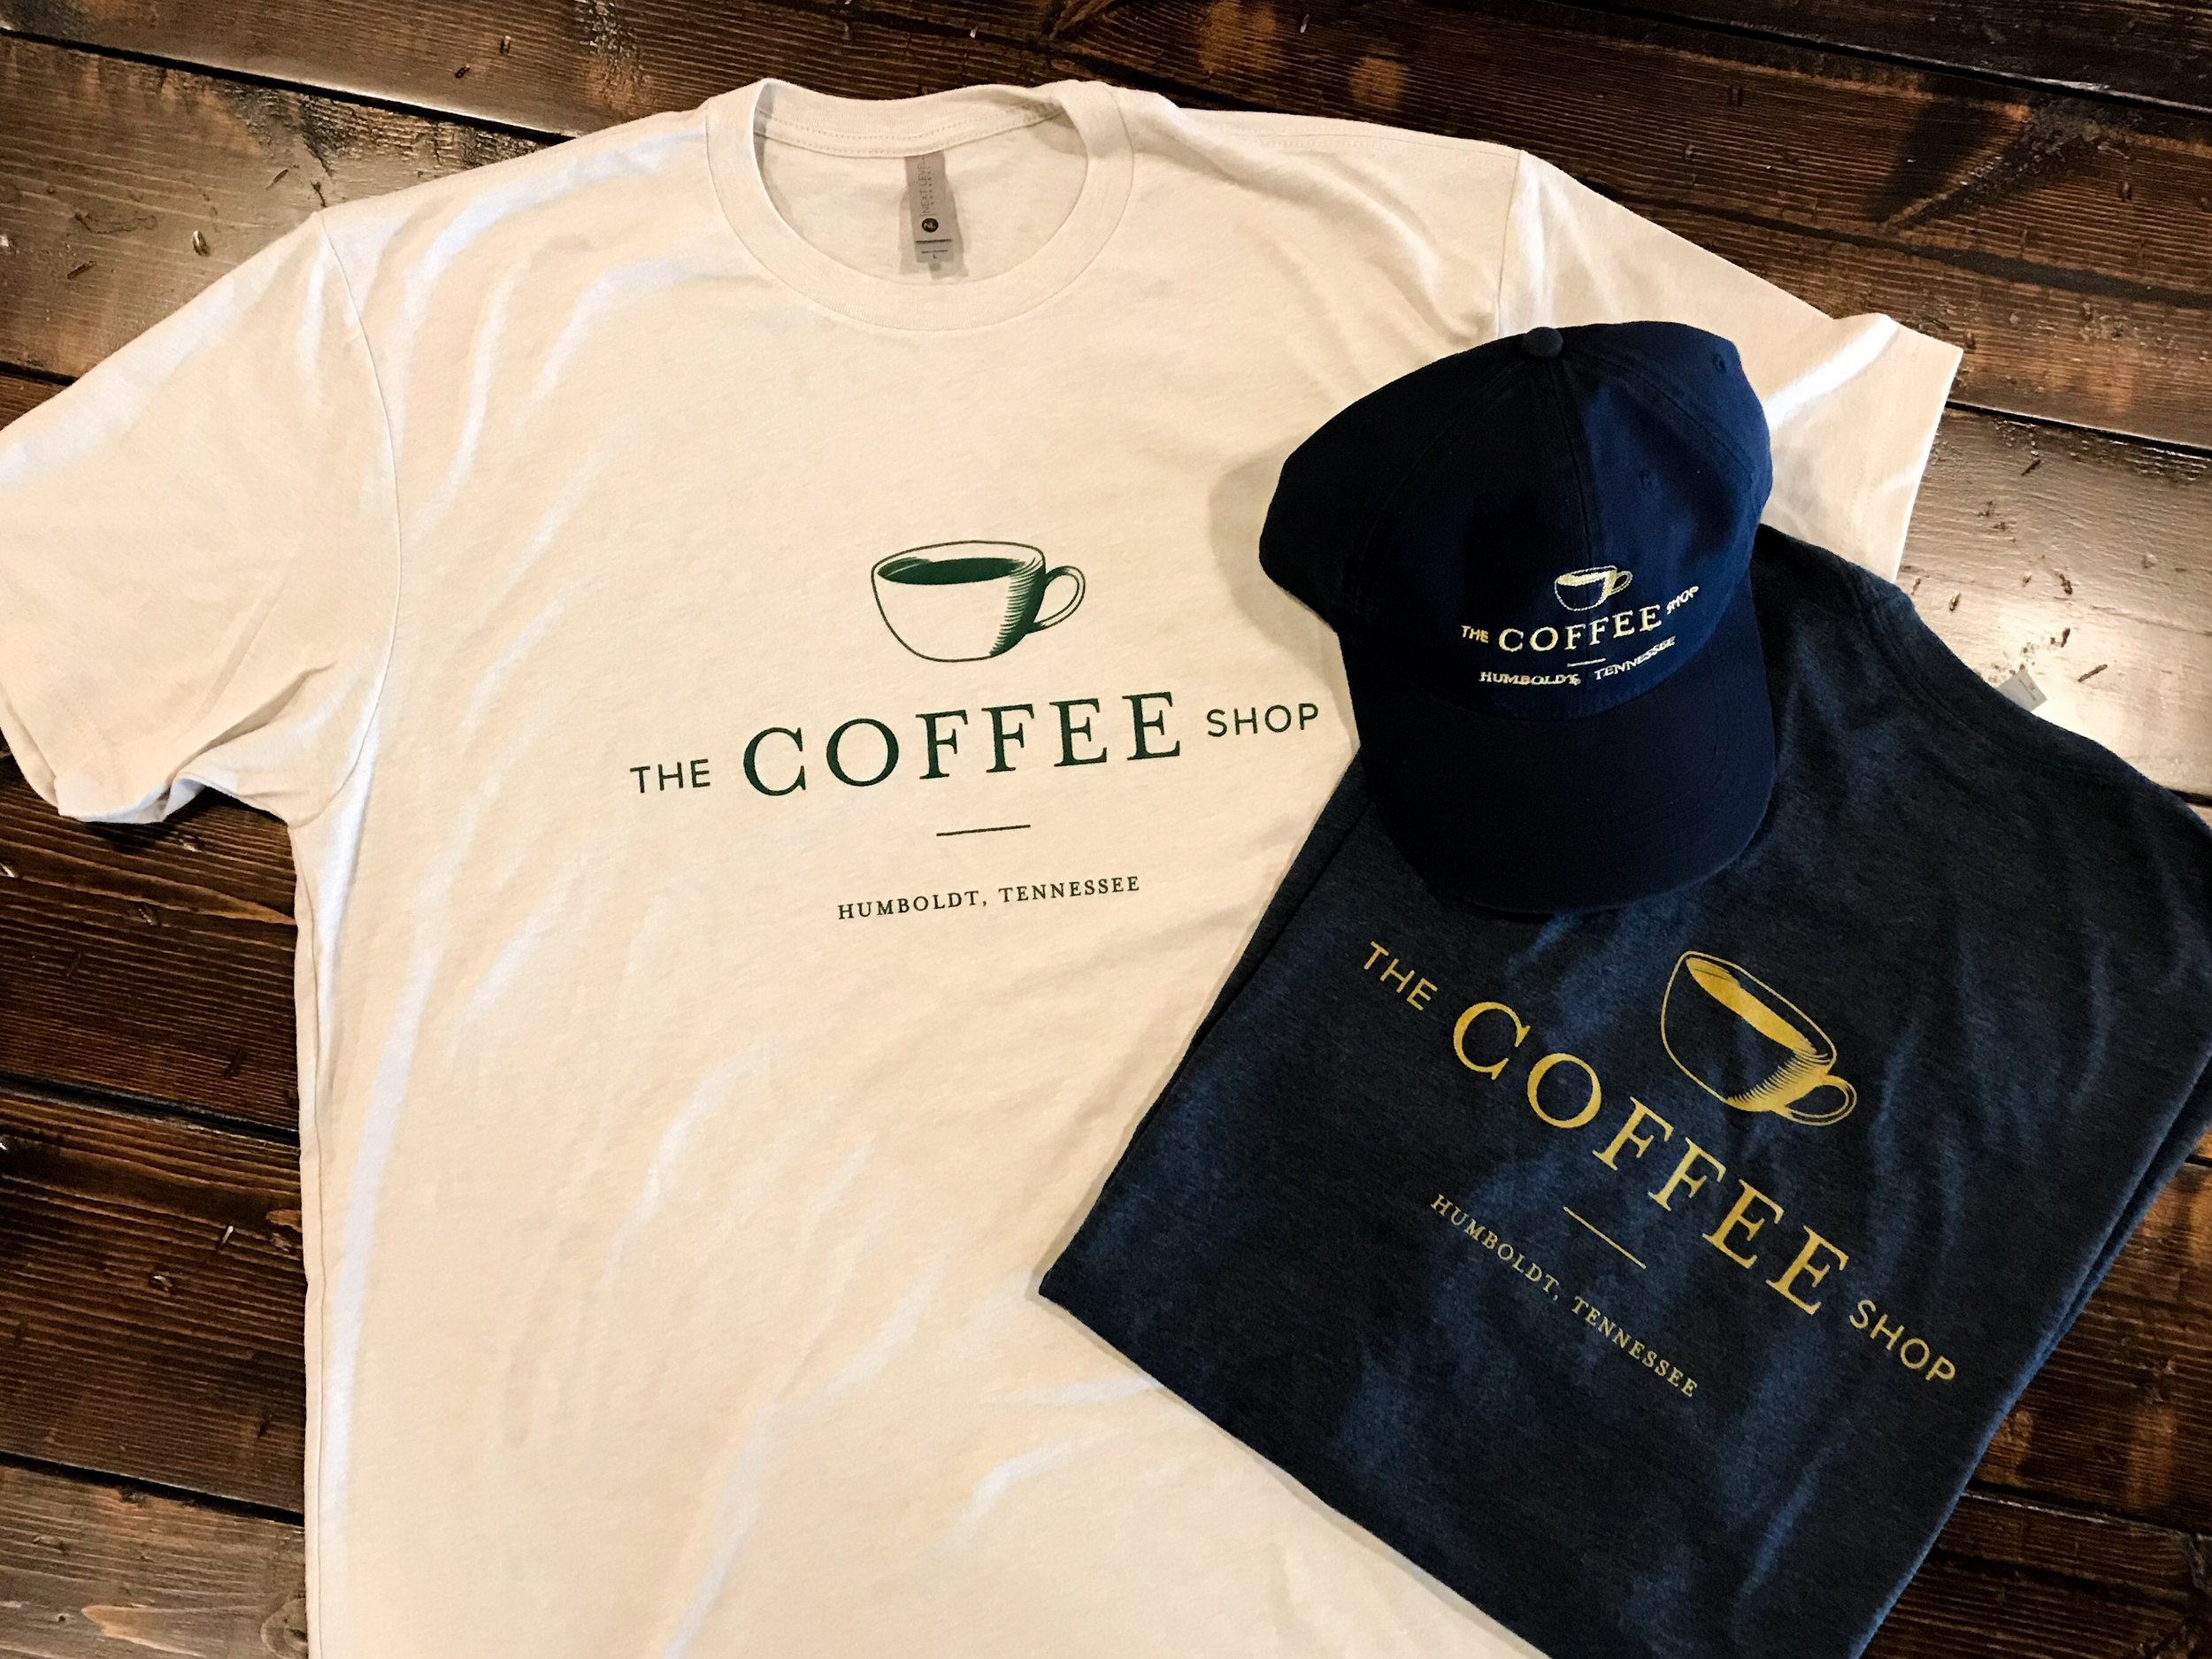 Coffee Shop Merchandise - Hats: $14T-shirts: SM-XL $16, XXL^ $20Coffee Shop Bundle: $27